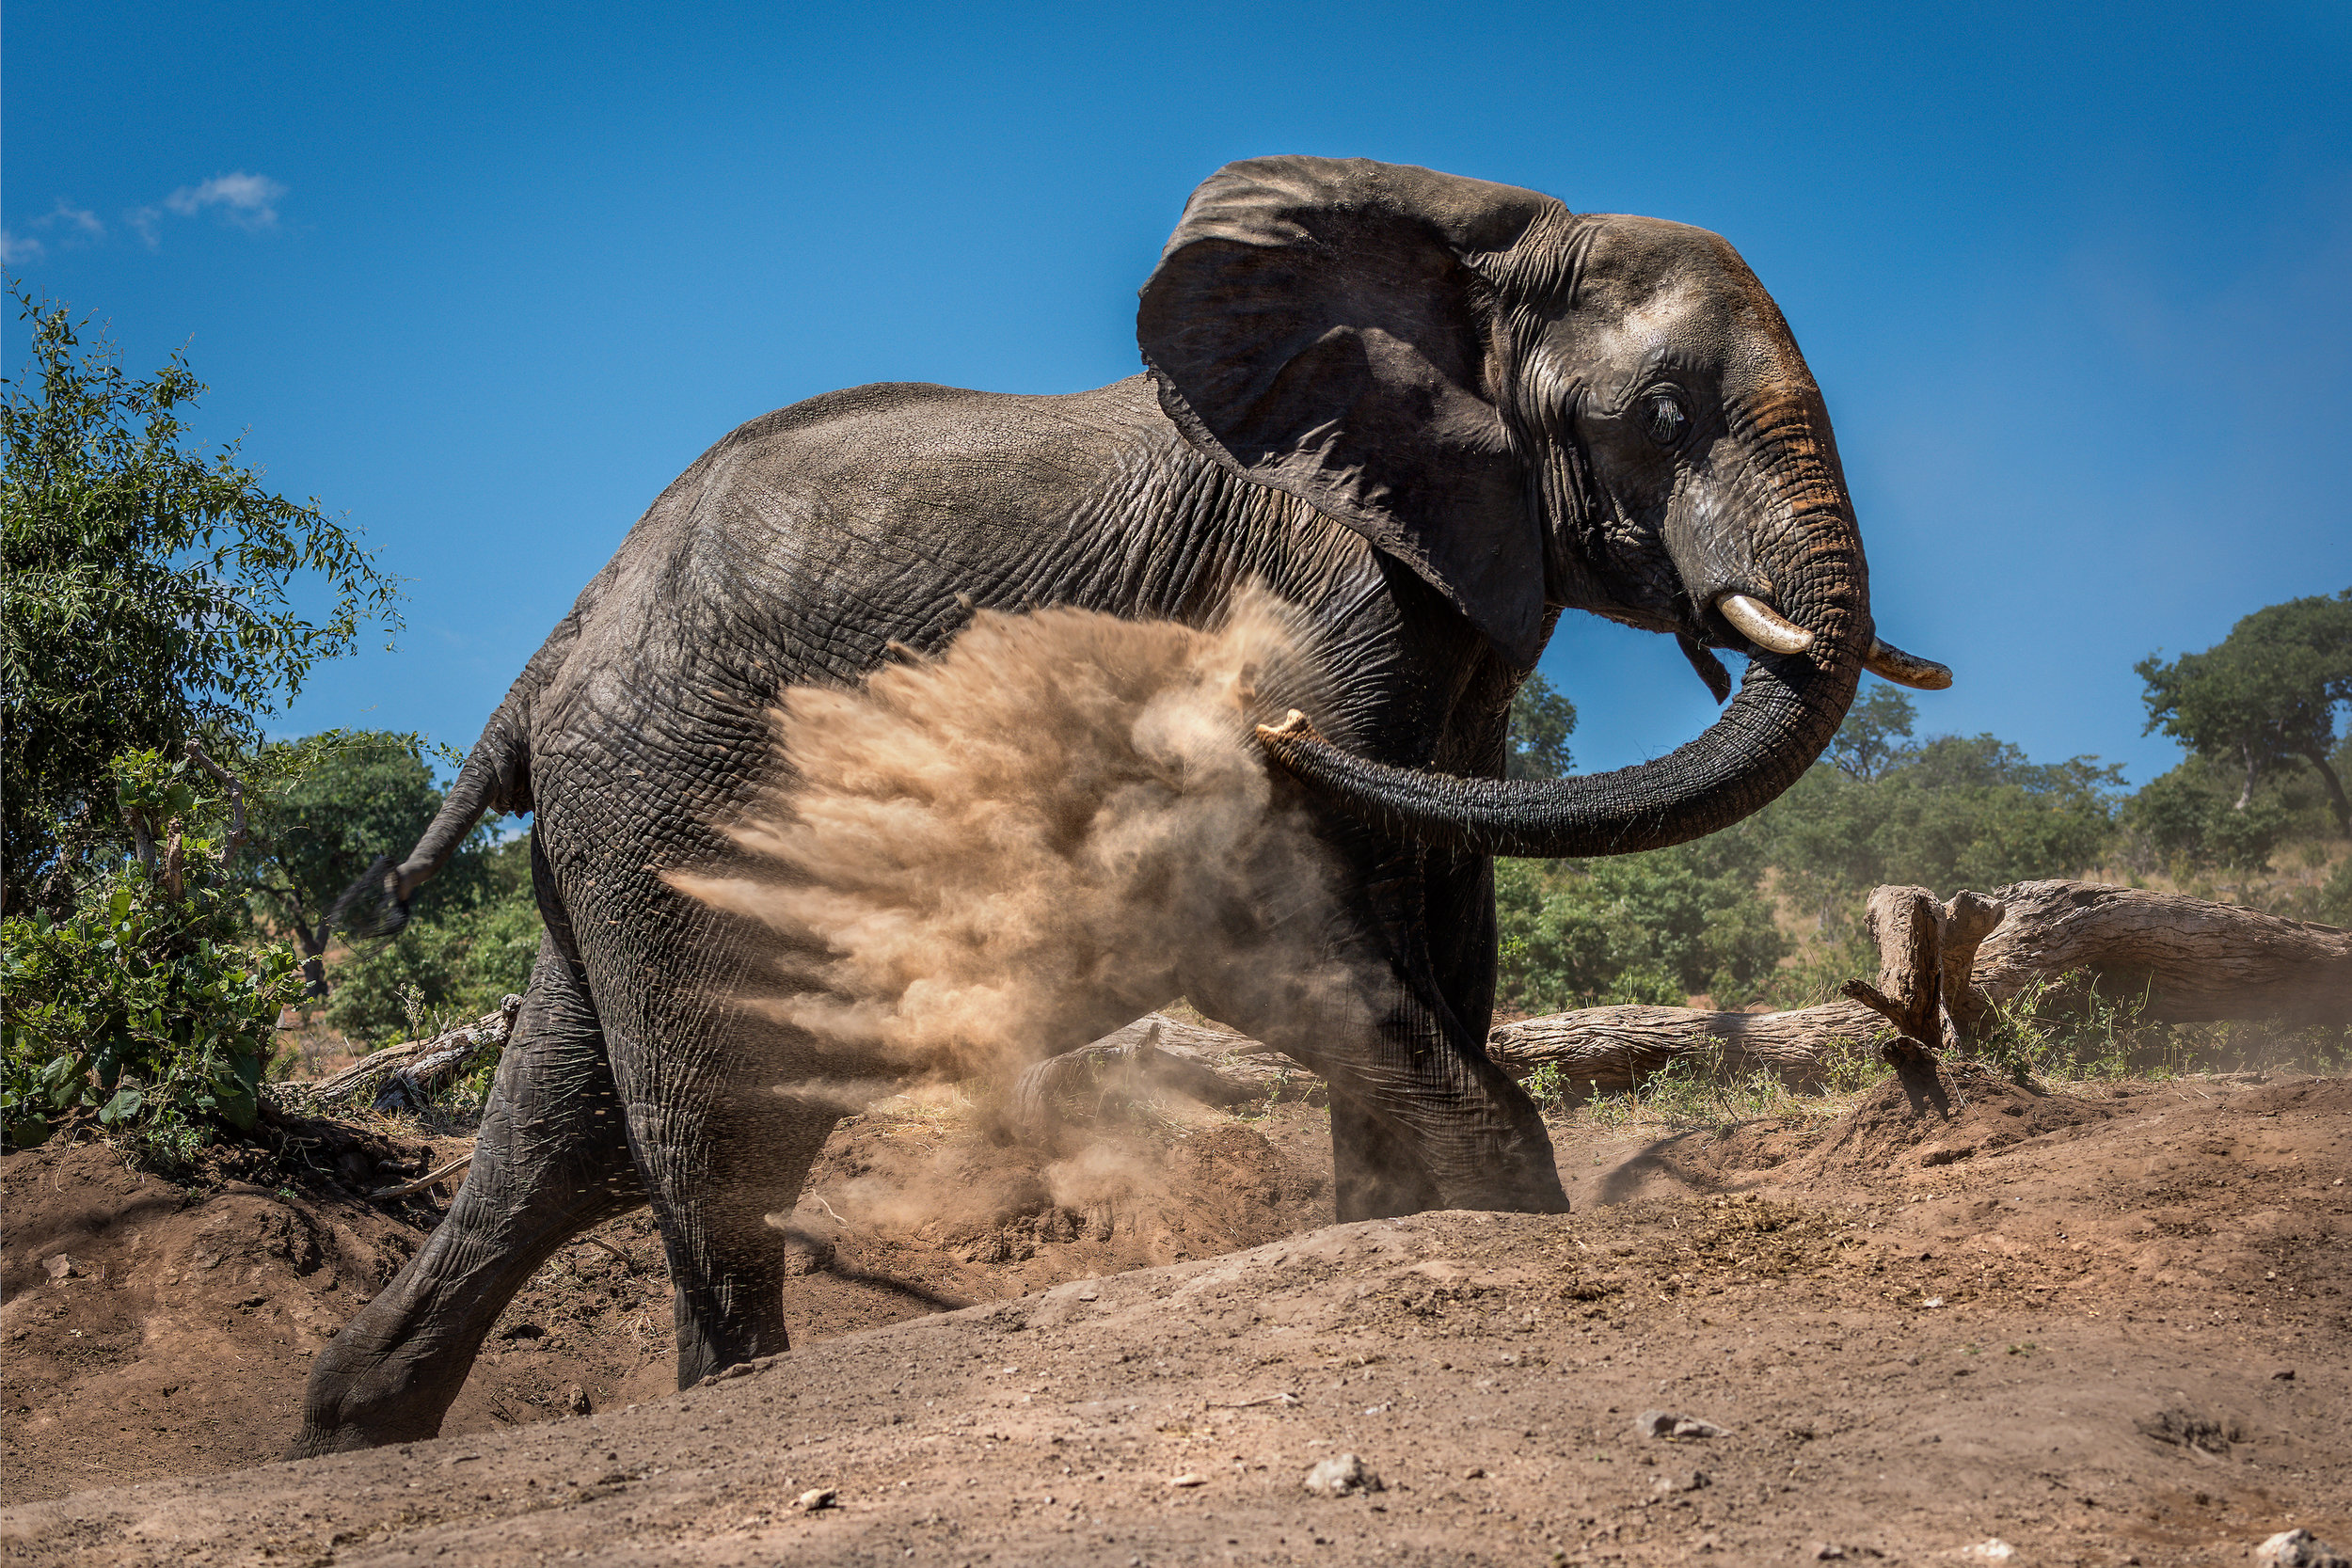 Elephant giving itself dust bath on hillside